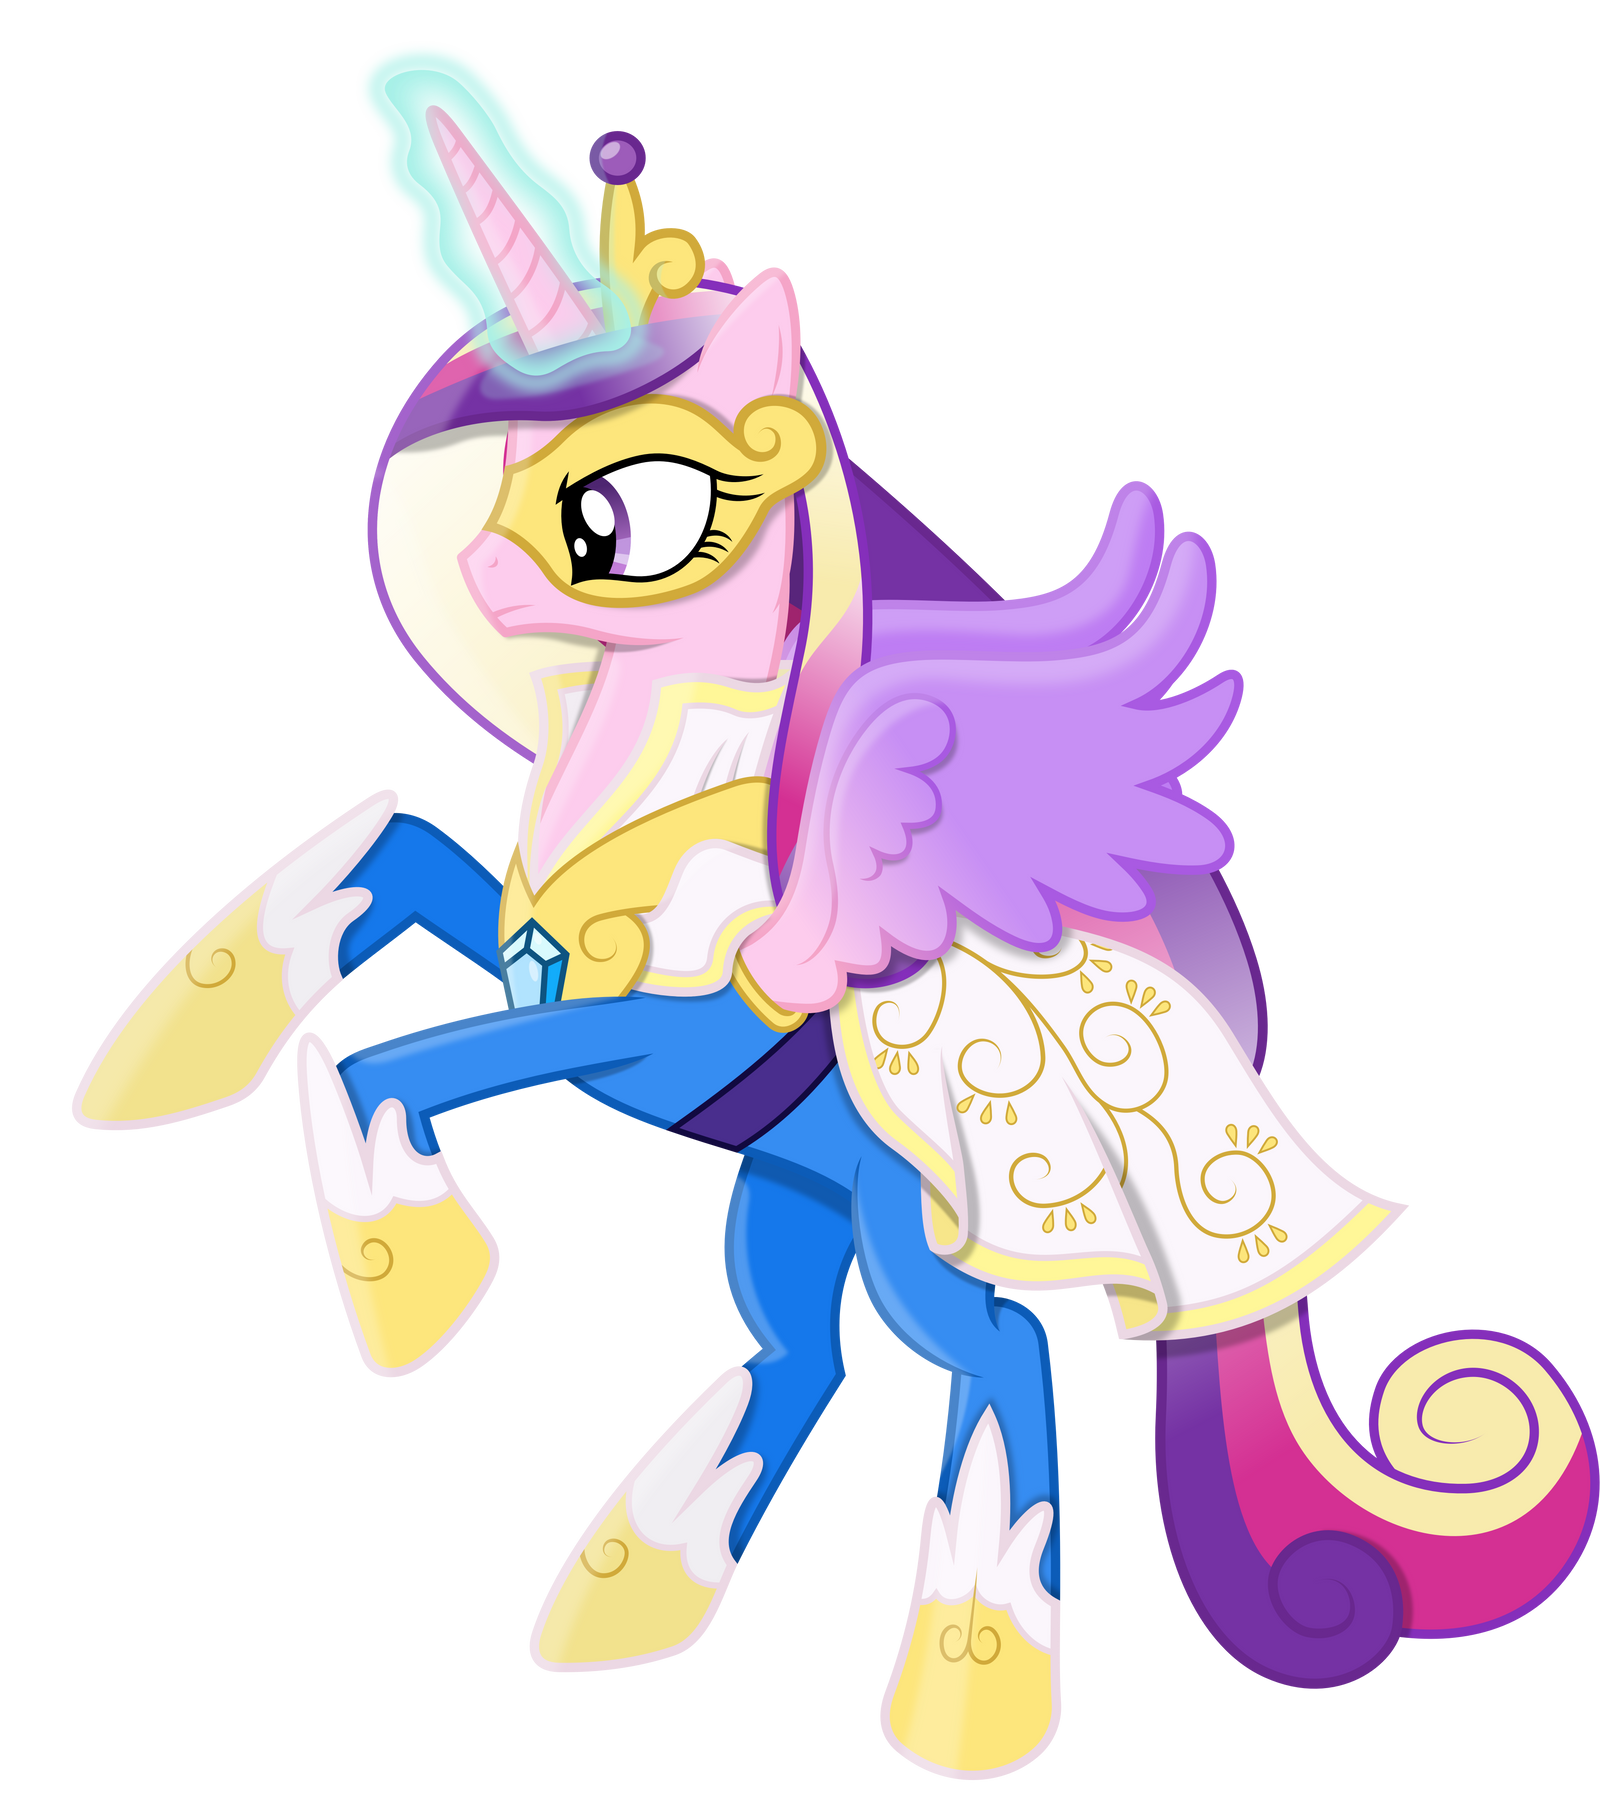 Princess Cadance As A Power Pony By 90Sigma On DeviantArt